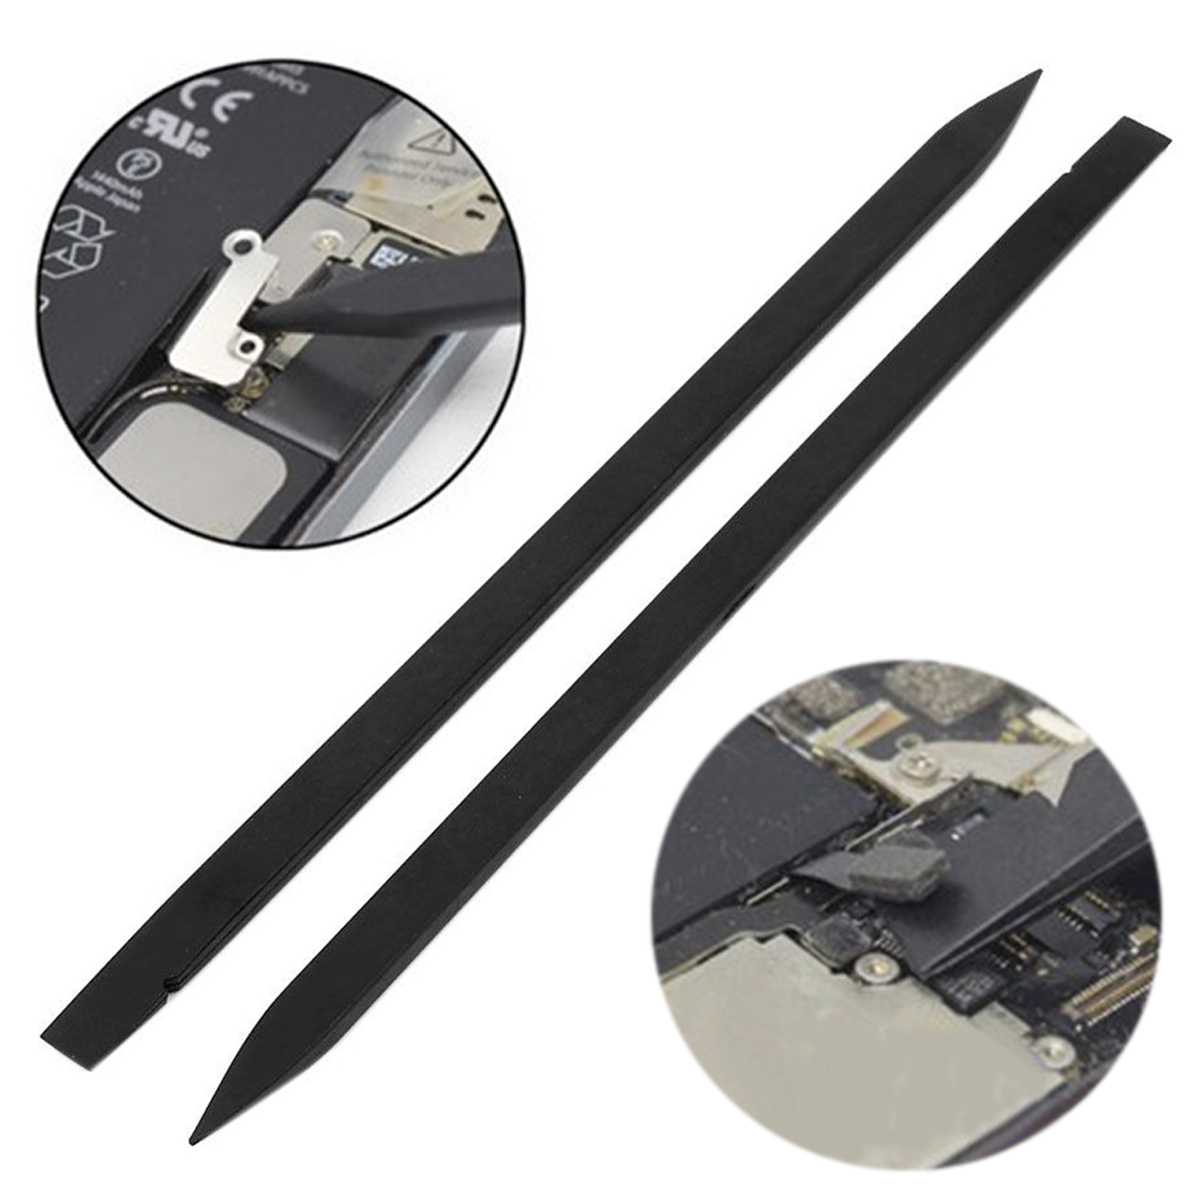 10pcs Anti Static Stick Spudger 150mm Heat Resistant Plastic Pry Opening Tool for Smartphone Repair Soldering Mayitr Hand Tools